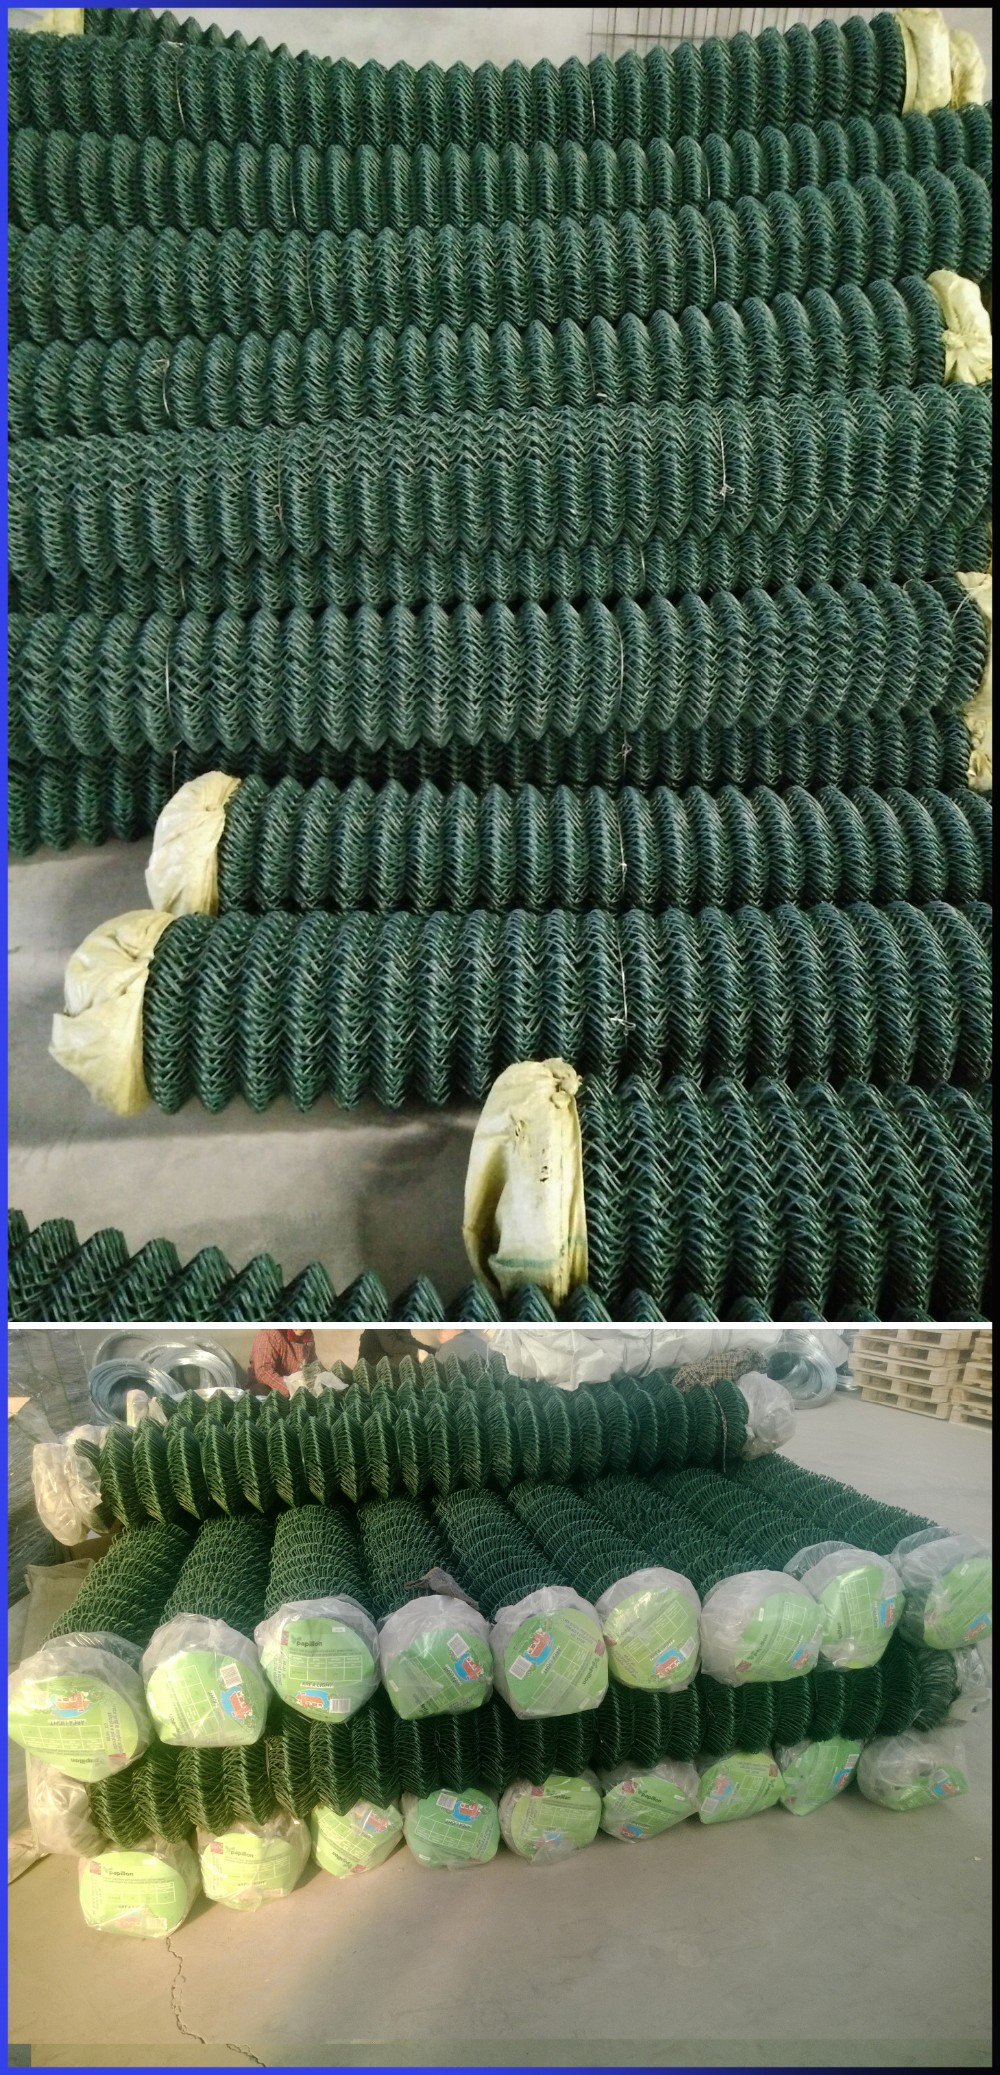 Anodized 9 gauge used chain link fence for sale